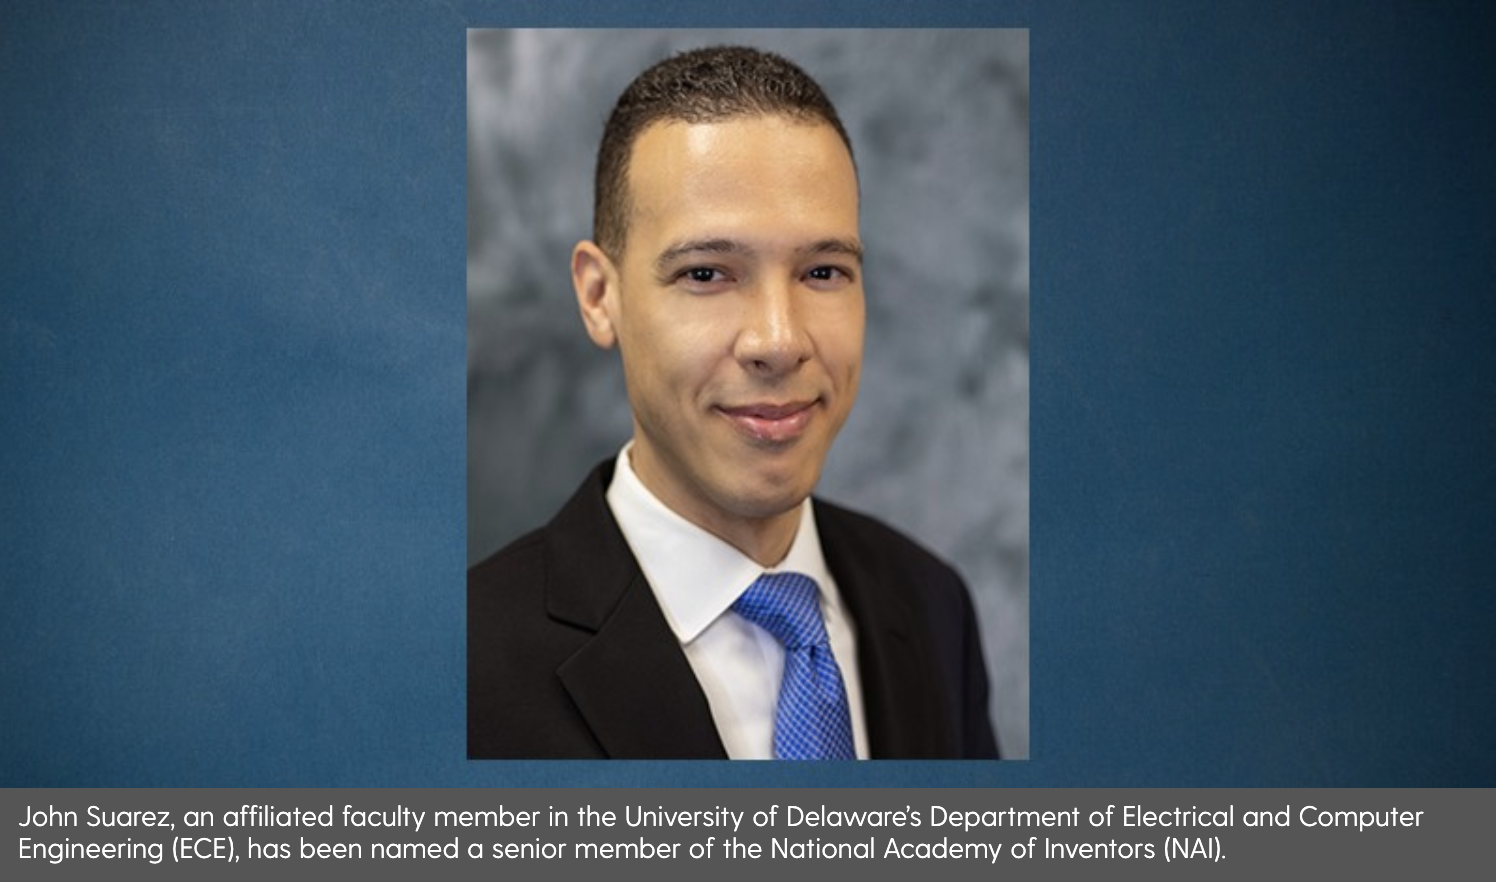 National Academy of Inventors selects UD's John Suarez for senior membership